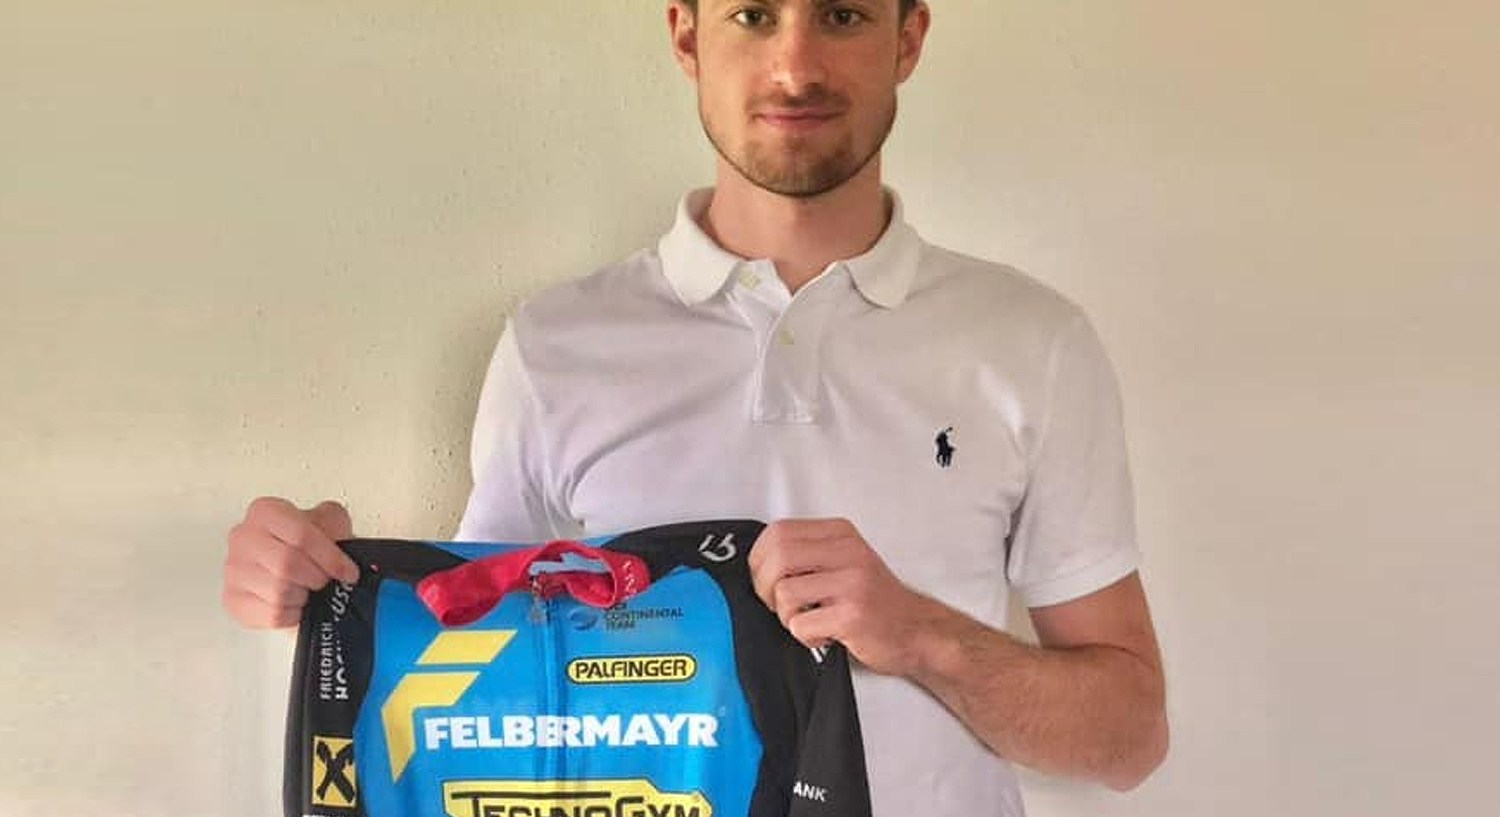 Marco Friedrich is pedaling for the Team Felbermayr Simplon Wels